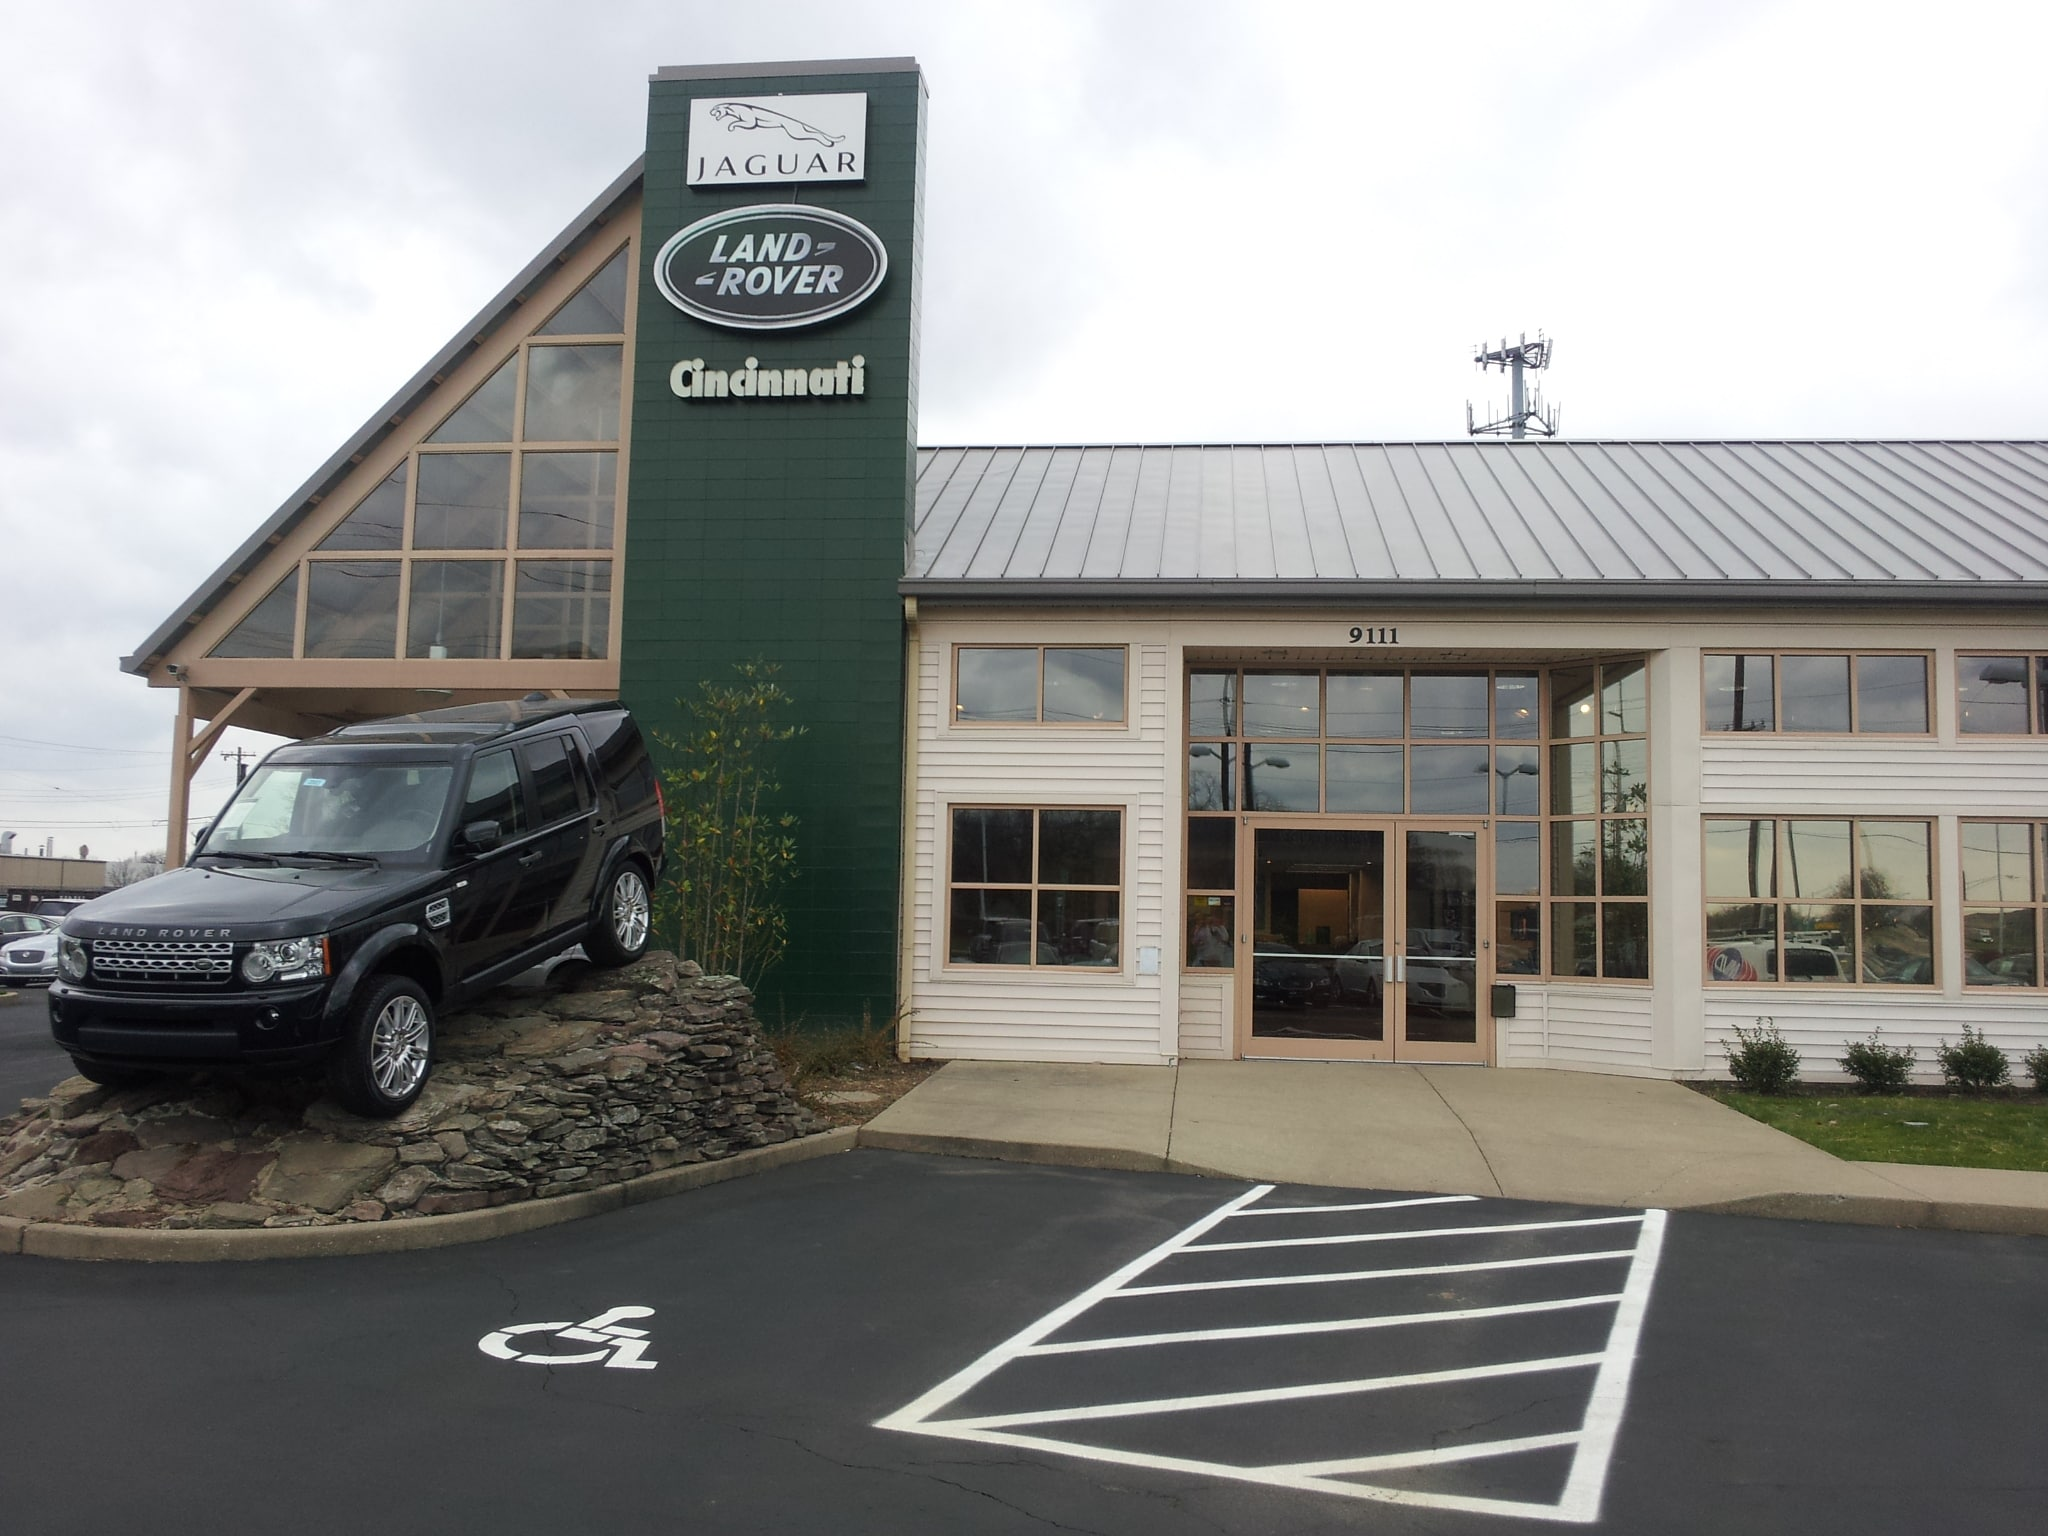 Land rover cincinnati new land rover dealership in for Garage land rover nancy